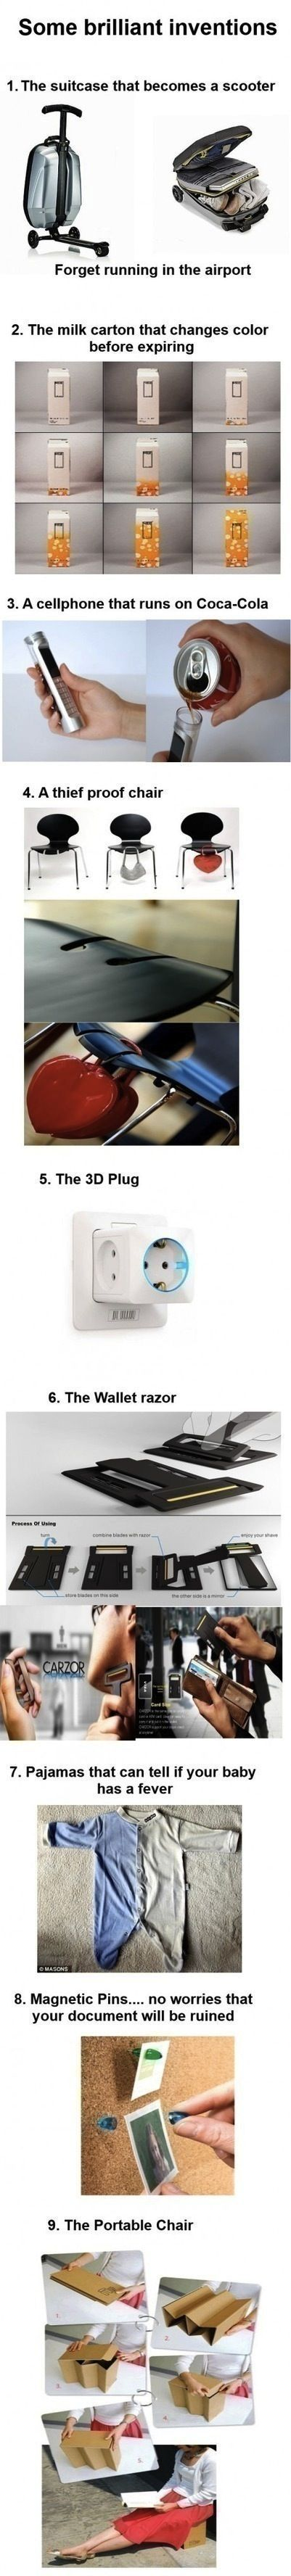 Some brilliant inventions. Ok why have i never seen any of these any where, this is great